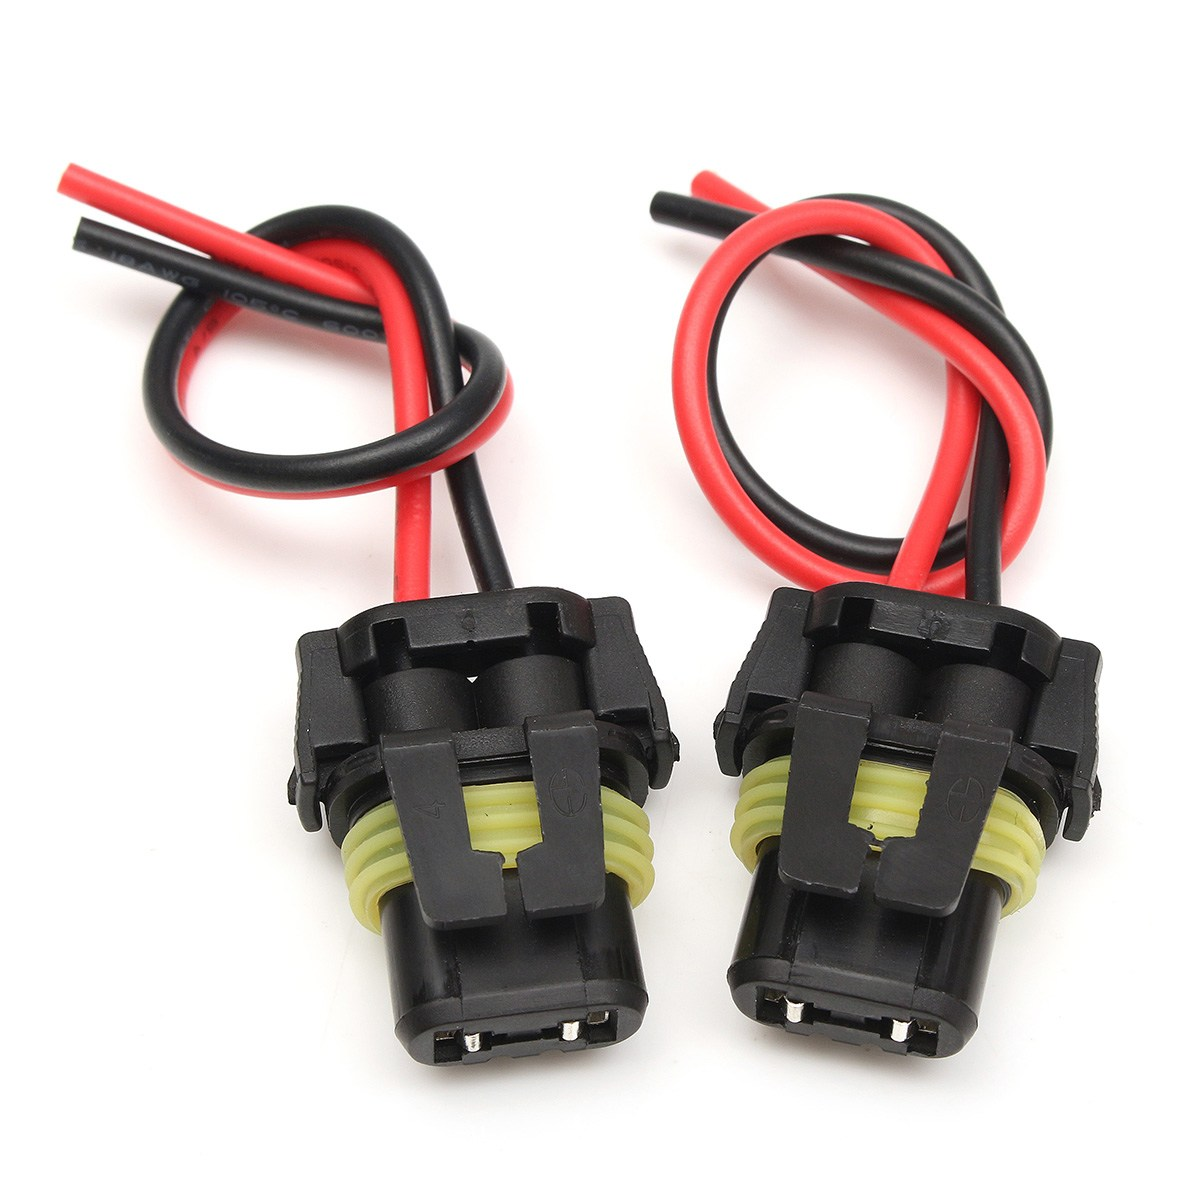 1pair Power Line Wire H10 9145 Harness Plug Fog Lamp Headlight Bulb Ford Expedition Wiring Connector Adapter For Gmc In From Automobiles Motorcycles On